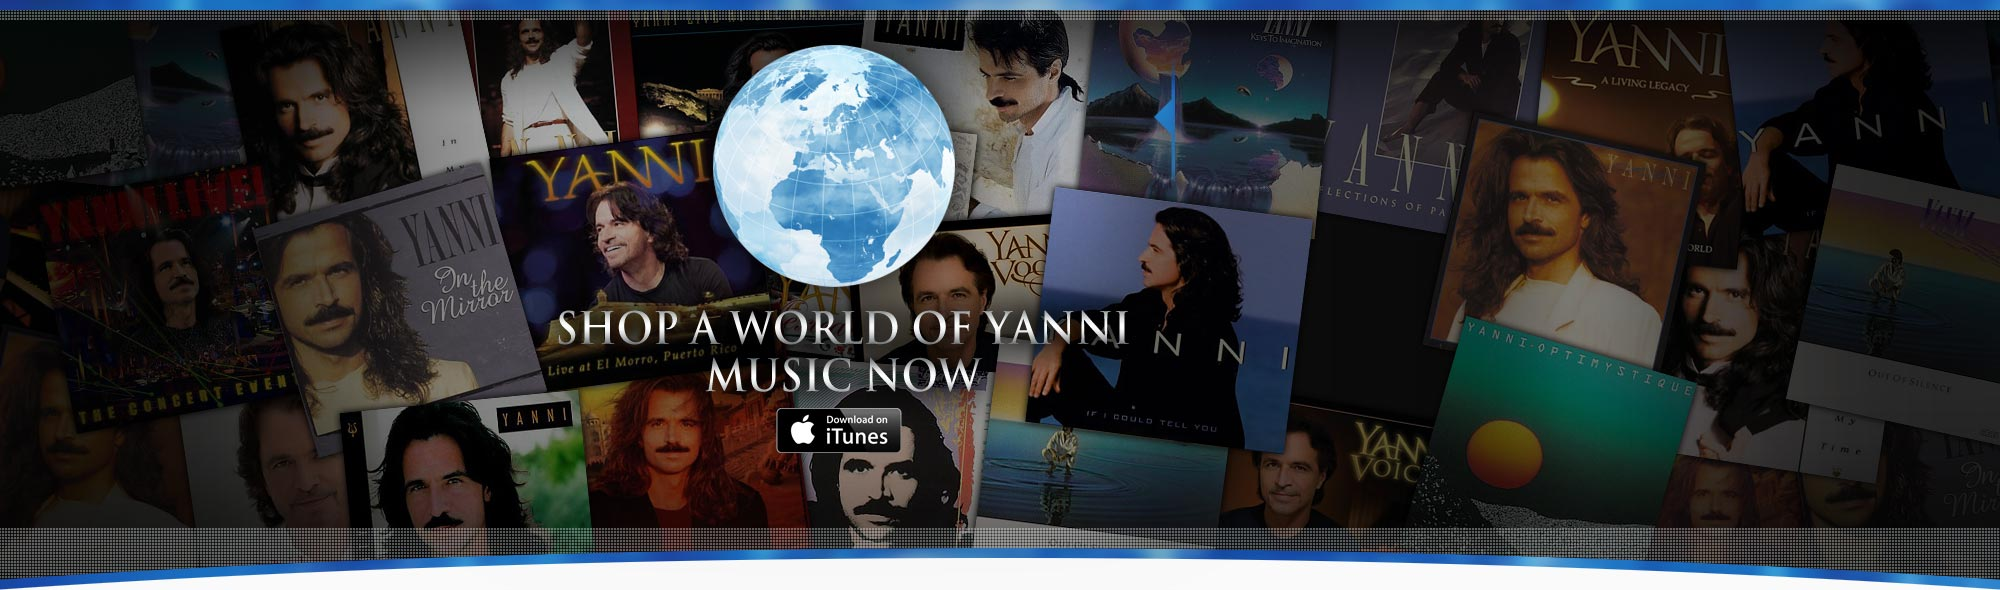 Website Yanni